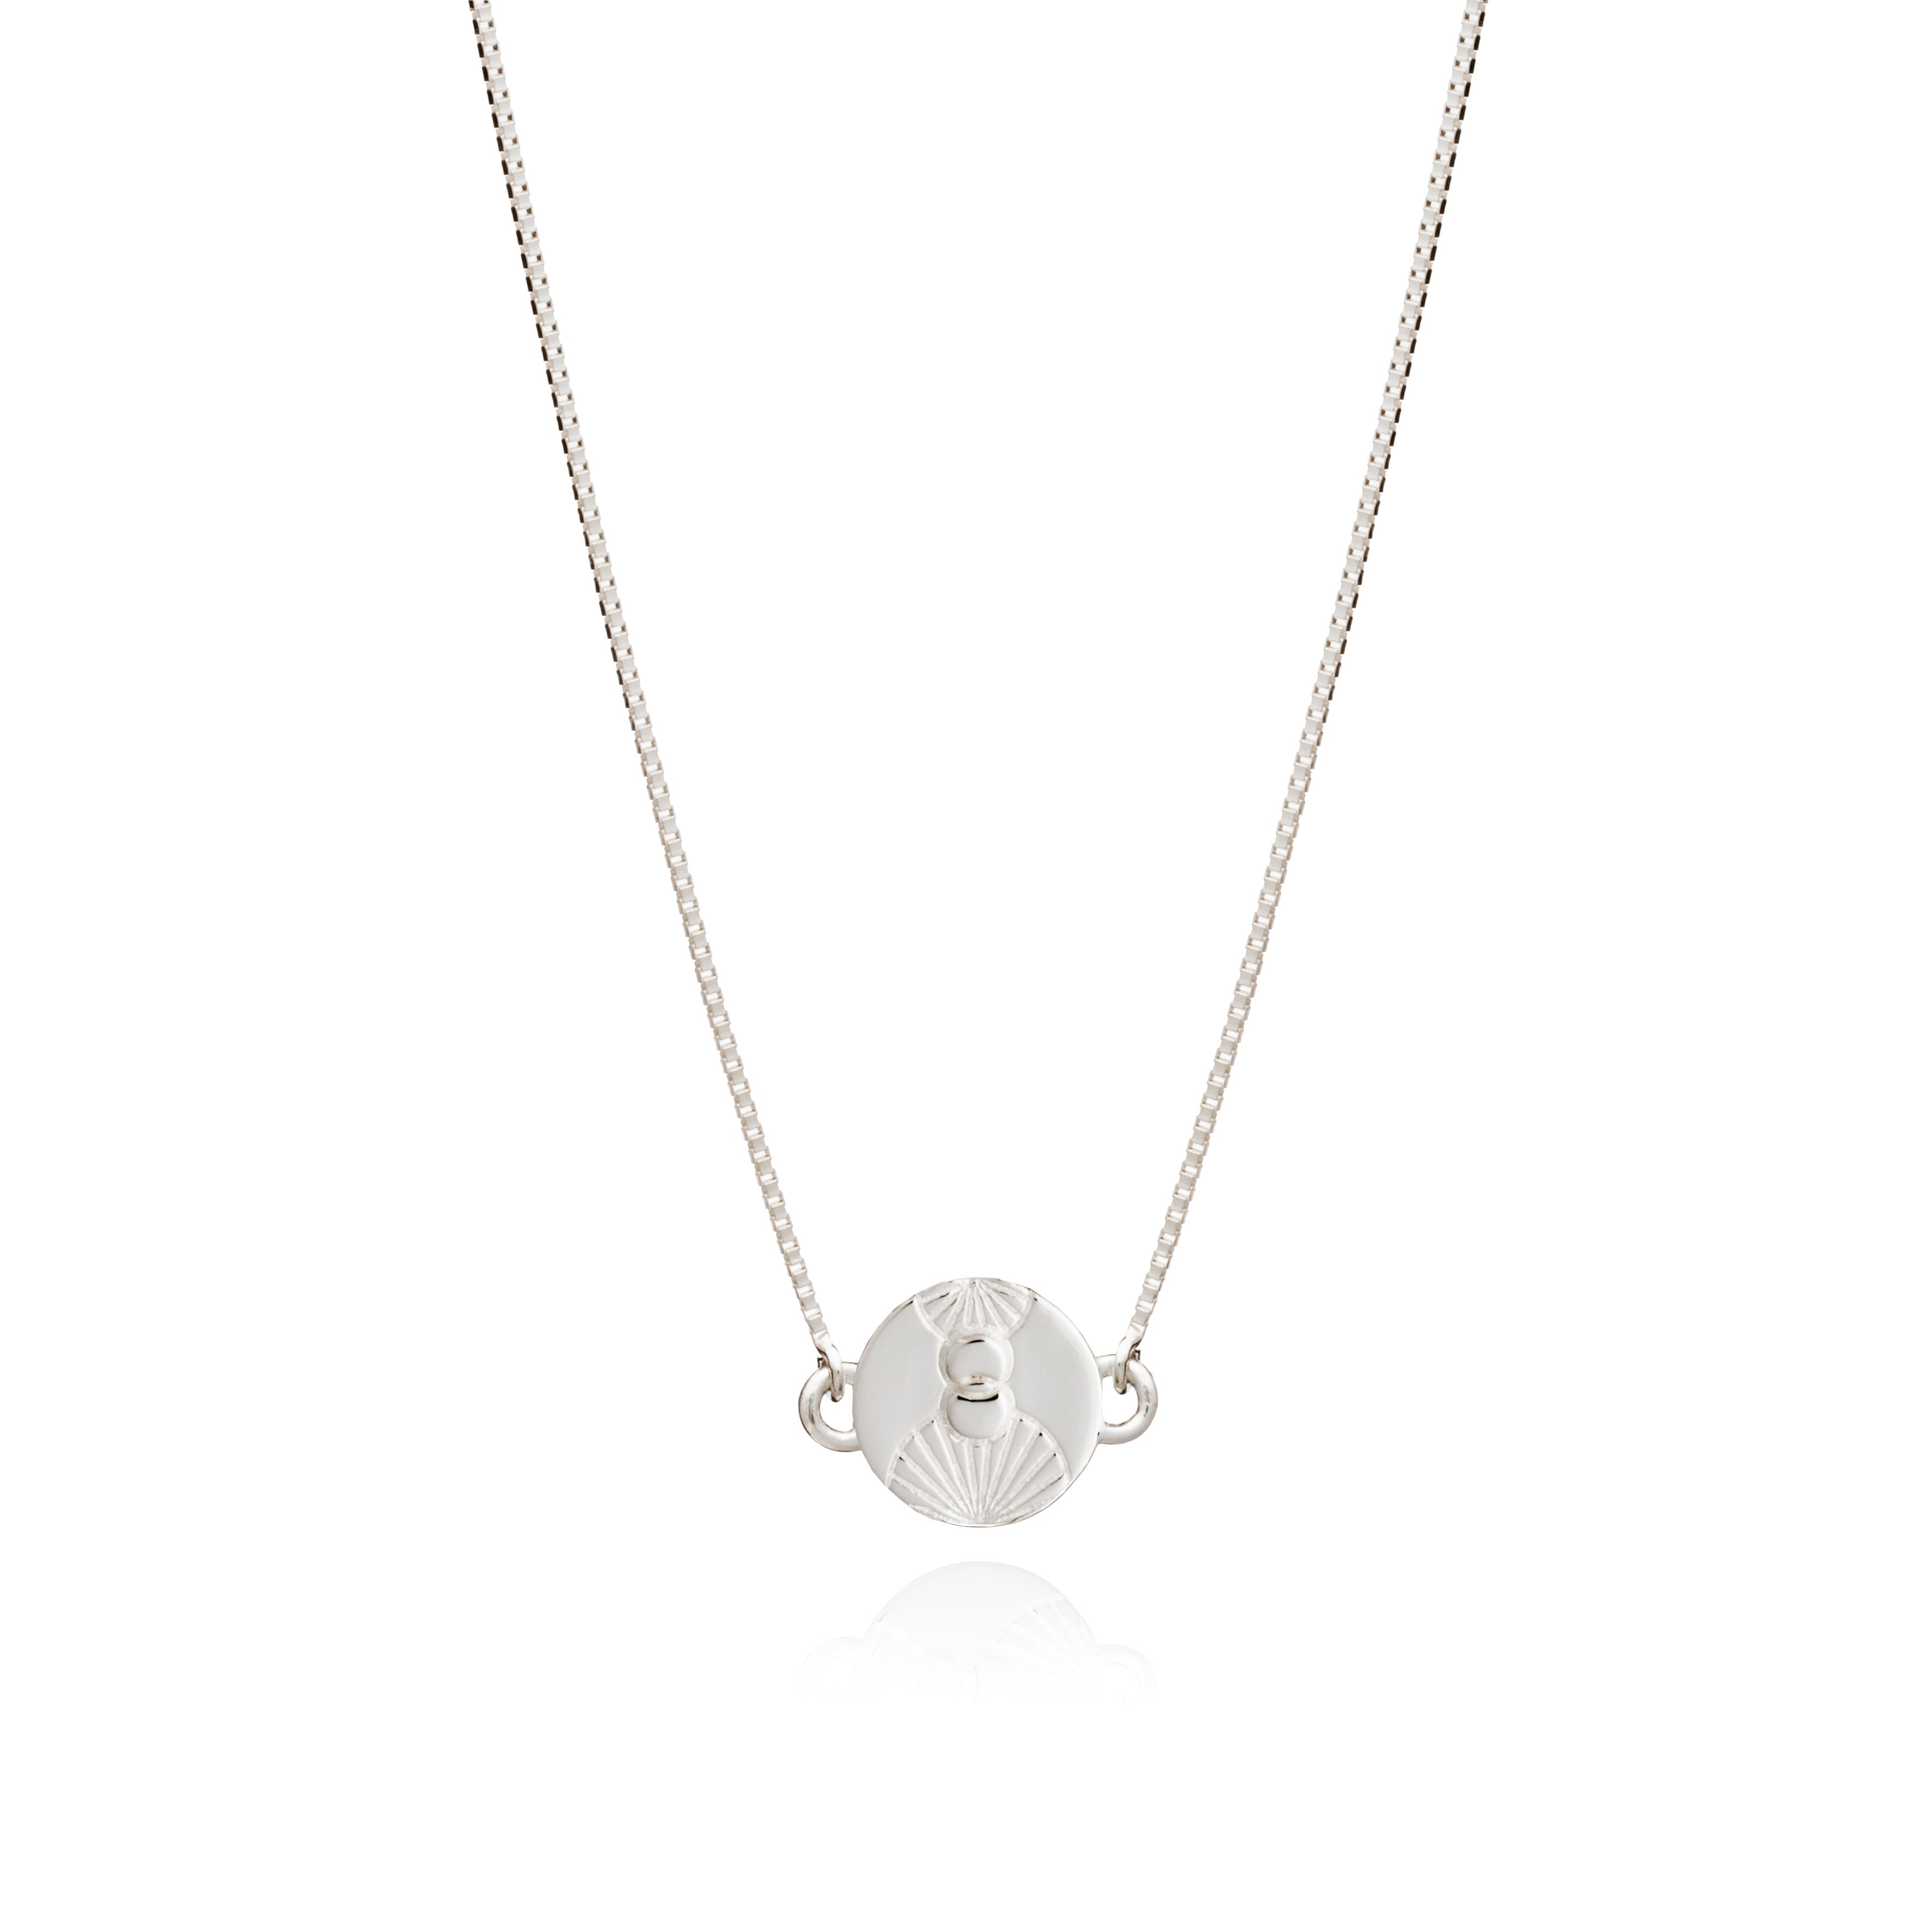 Luminary Art Coin Choker Necklace - Silver